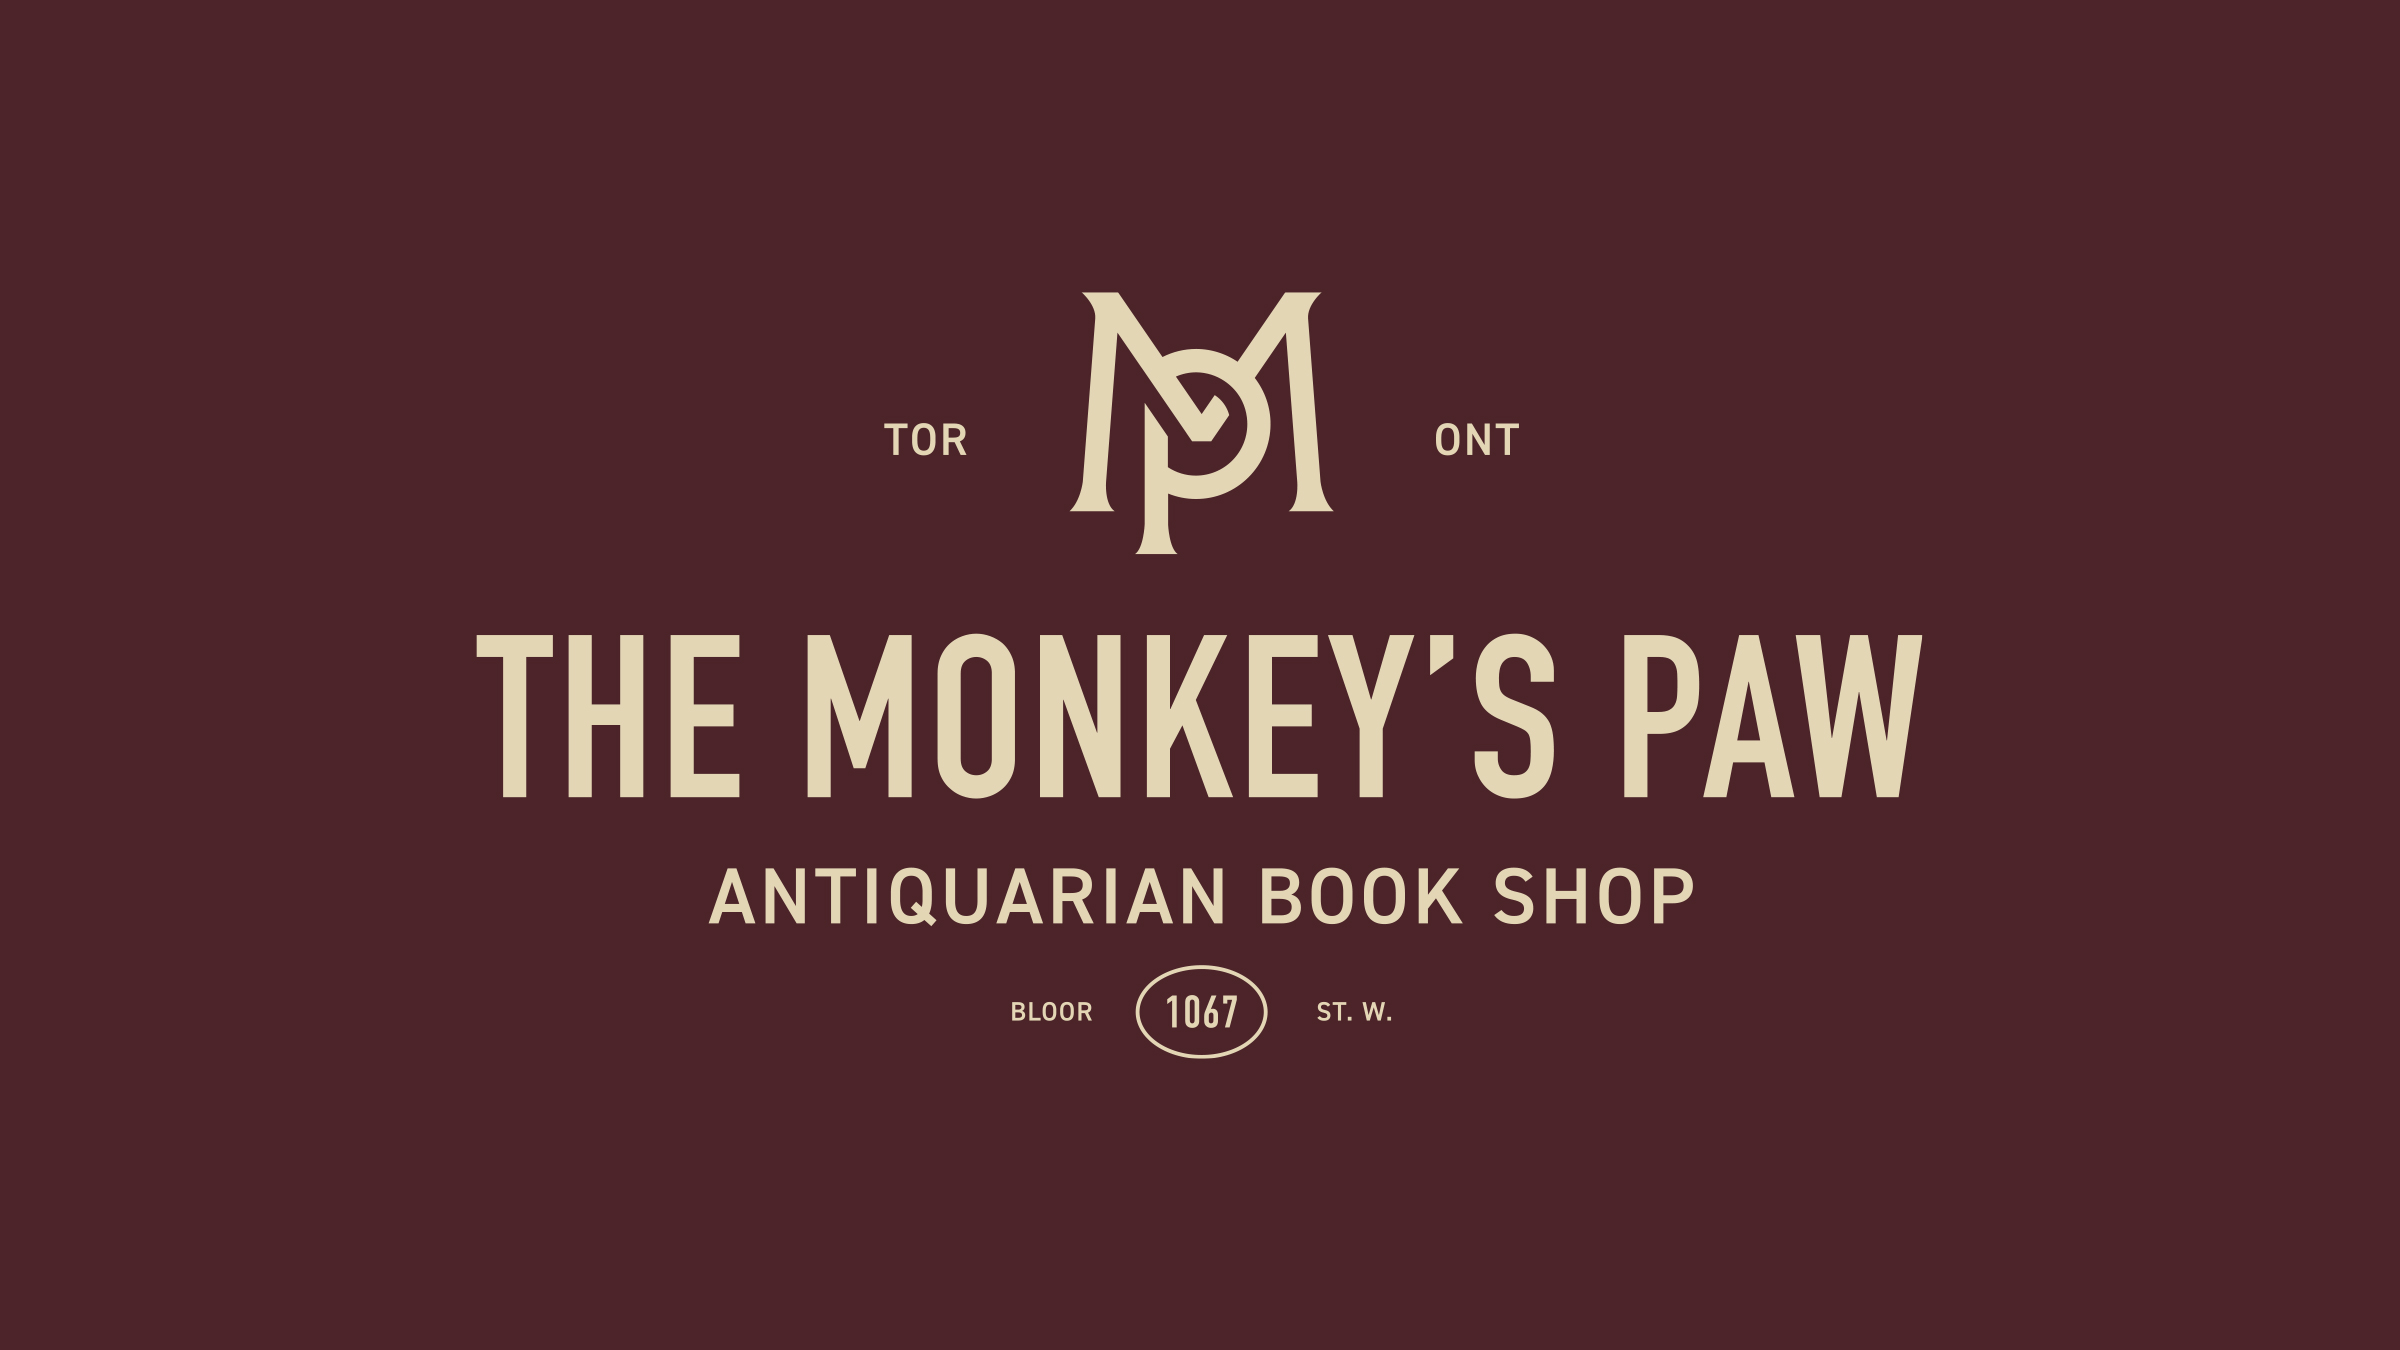 The Monkey's Paw brand logo cream on maroon